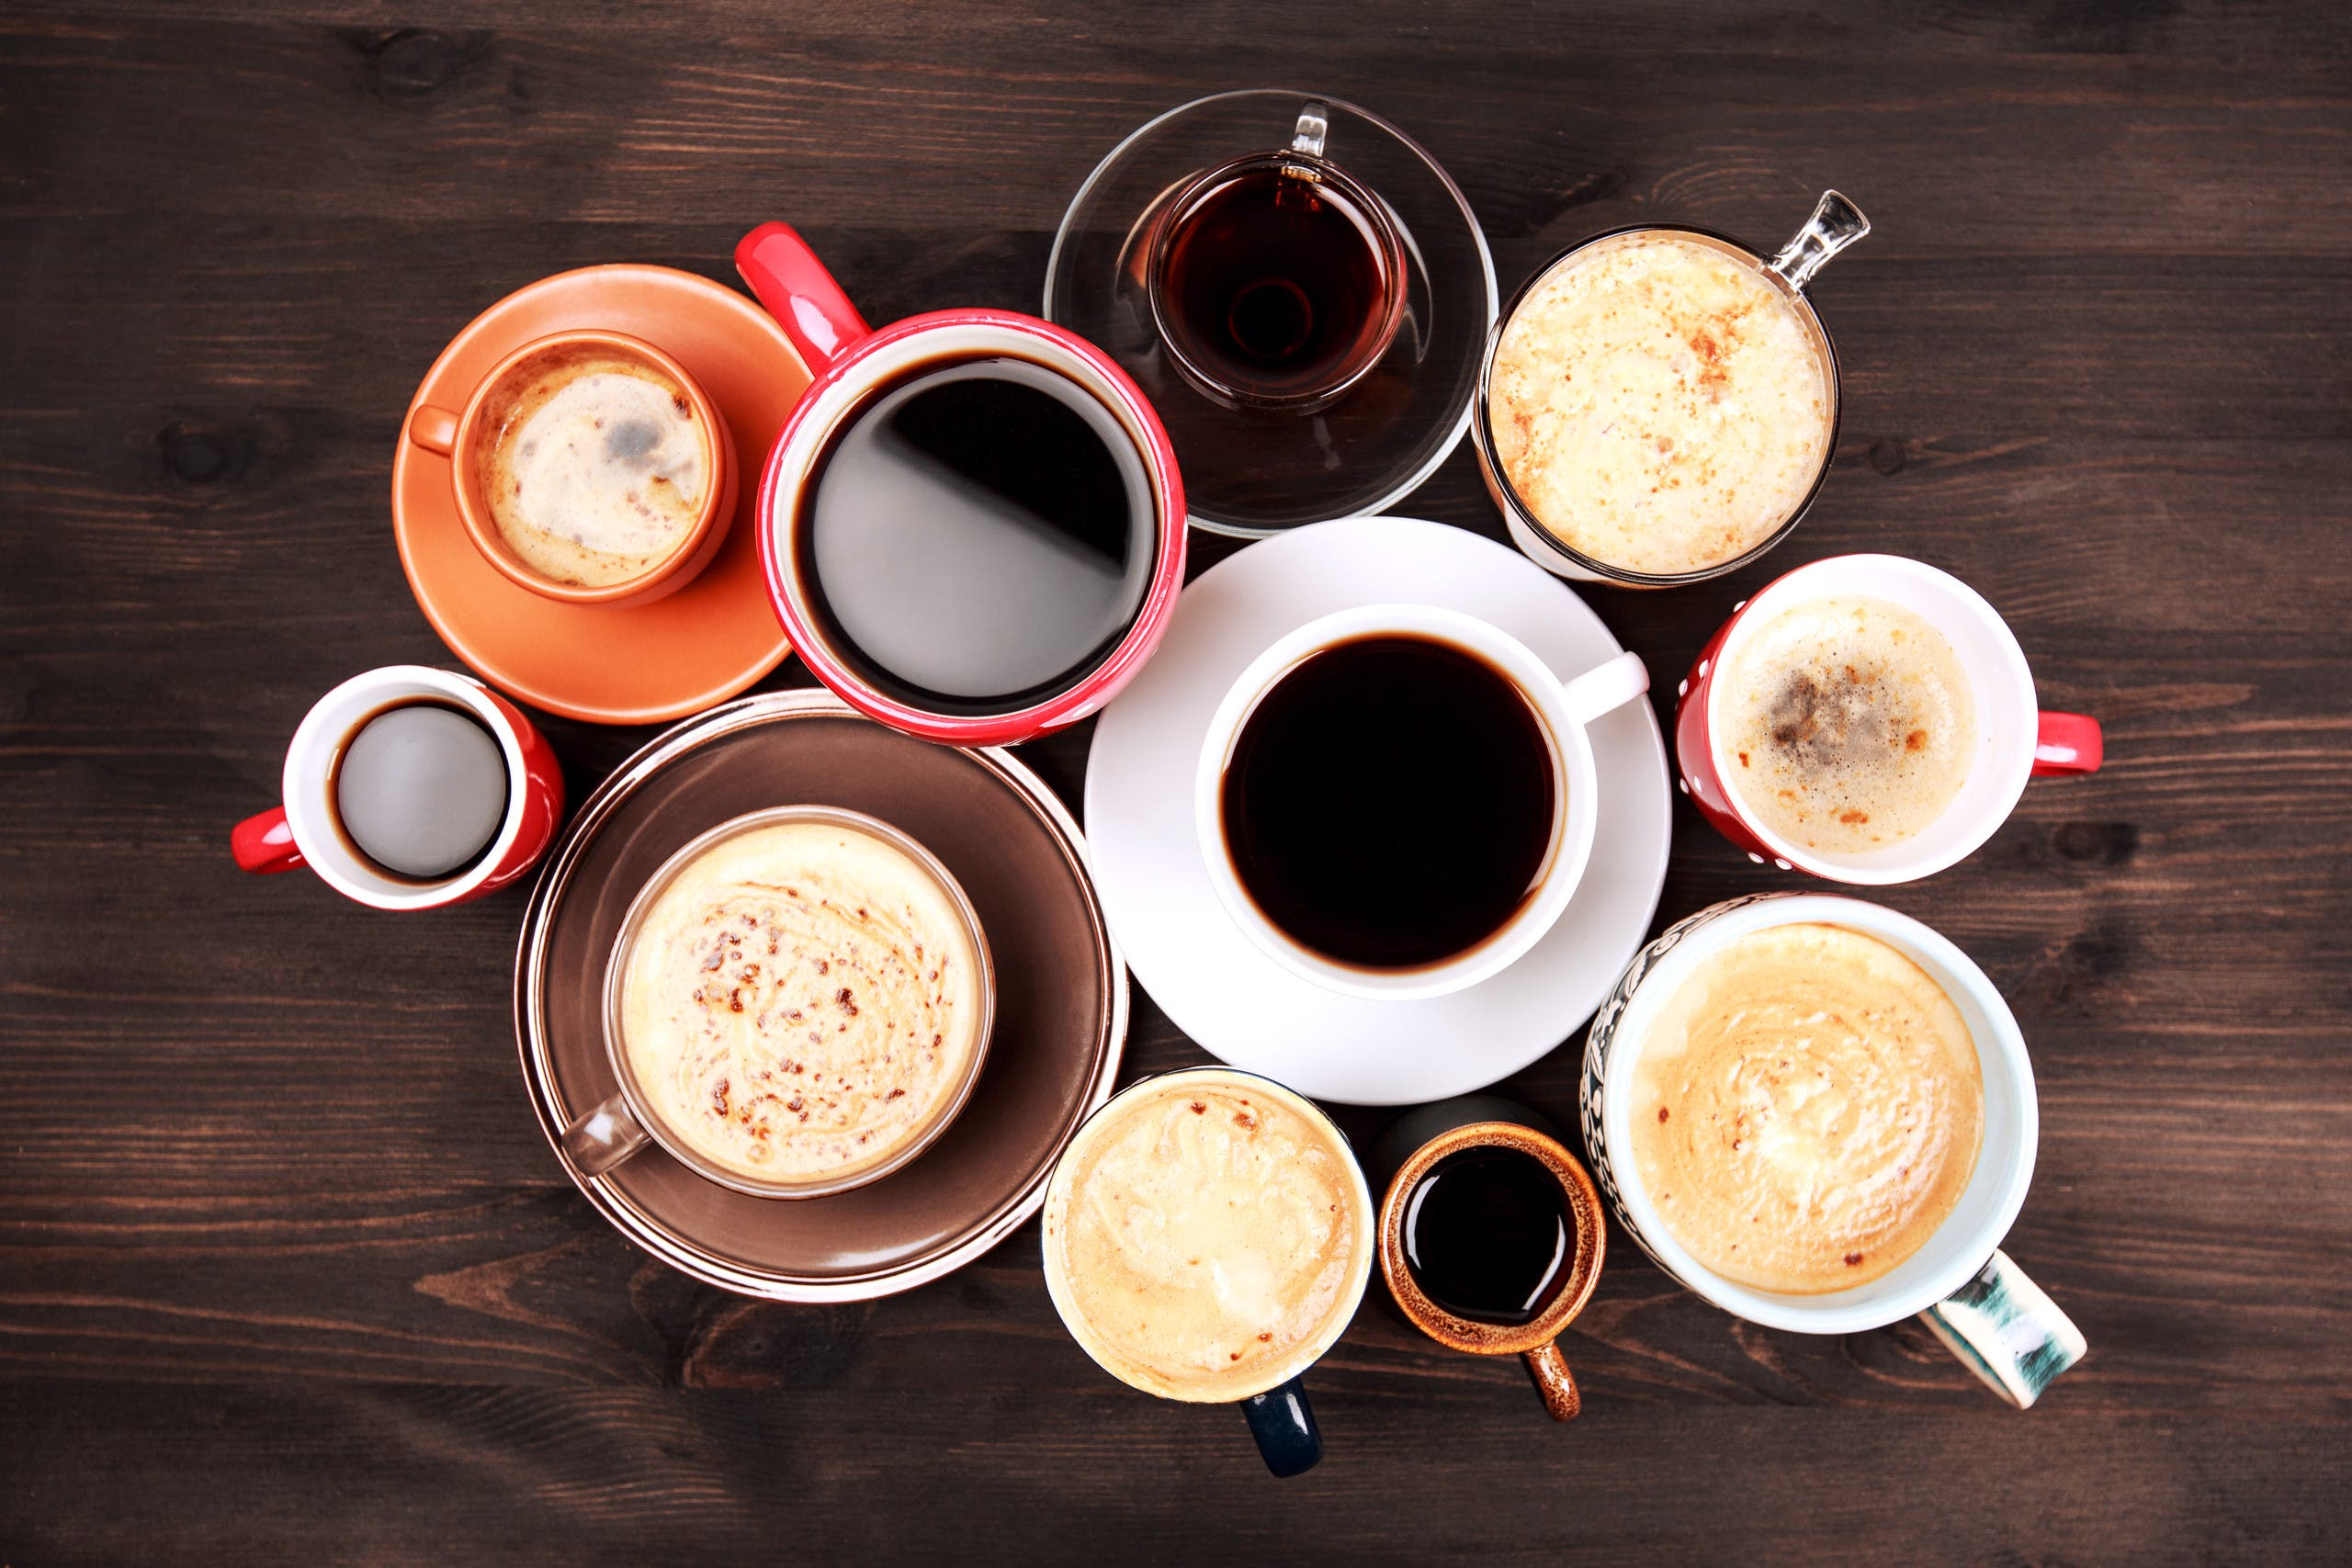 Many cups of coffee are placed on a wooden table. (Stock image)